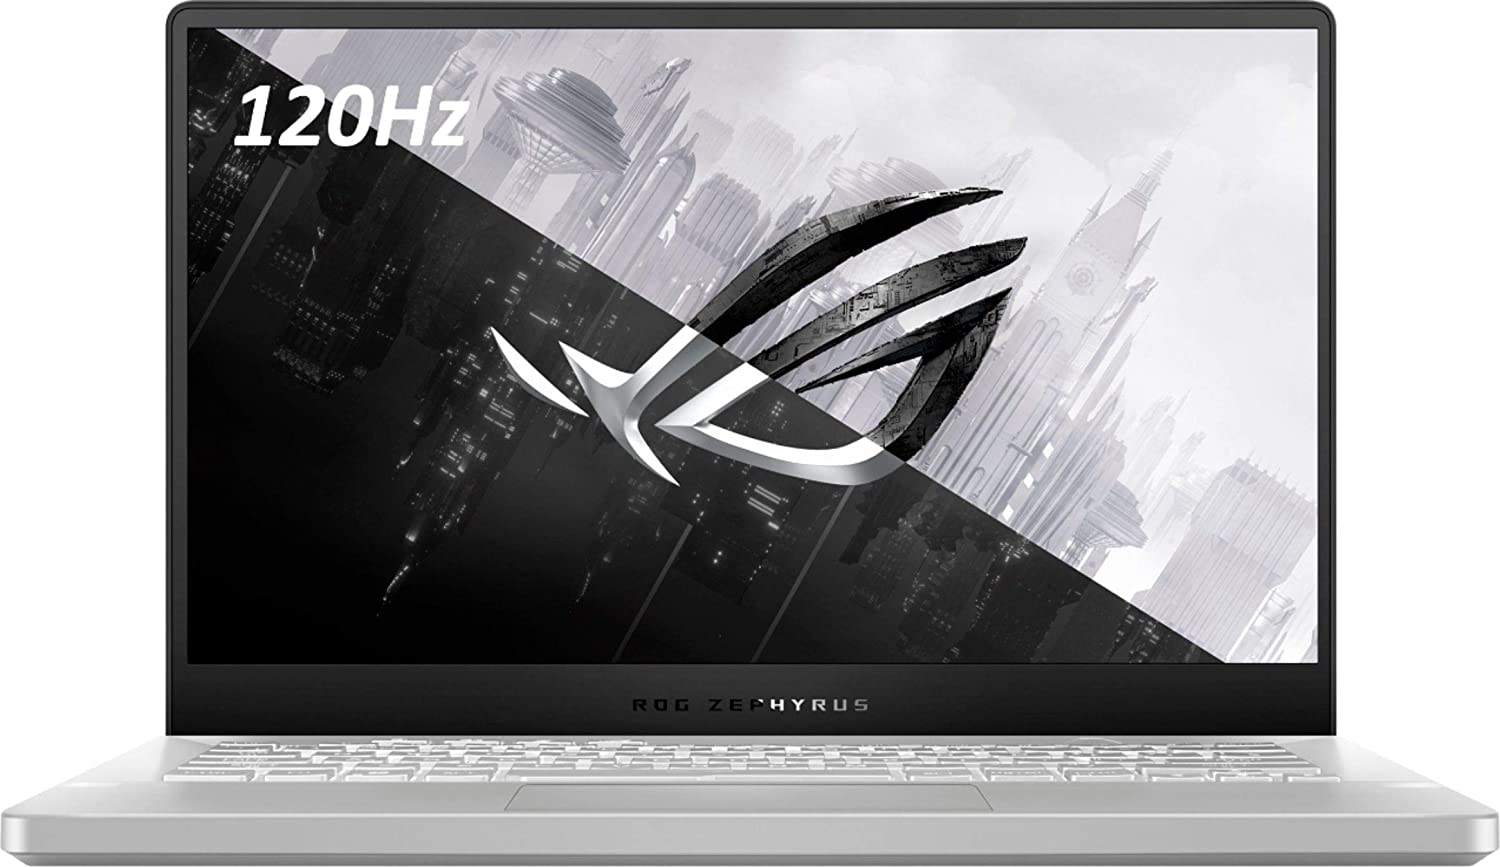 "ASUS ROG Zephyrus G14 14"" VR Ready 120Hz FHD Gaming Laptop,8Core AMD Ryzen 9 4900HS(Beat i7-10750H),16GB RAM,1TB PCIe SSD,Backlight,Wi-Fi 6,USB C,NVIDIA GeForce RTX2060 Max-Q,Win10 (Moonlight White)"